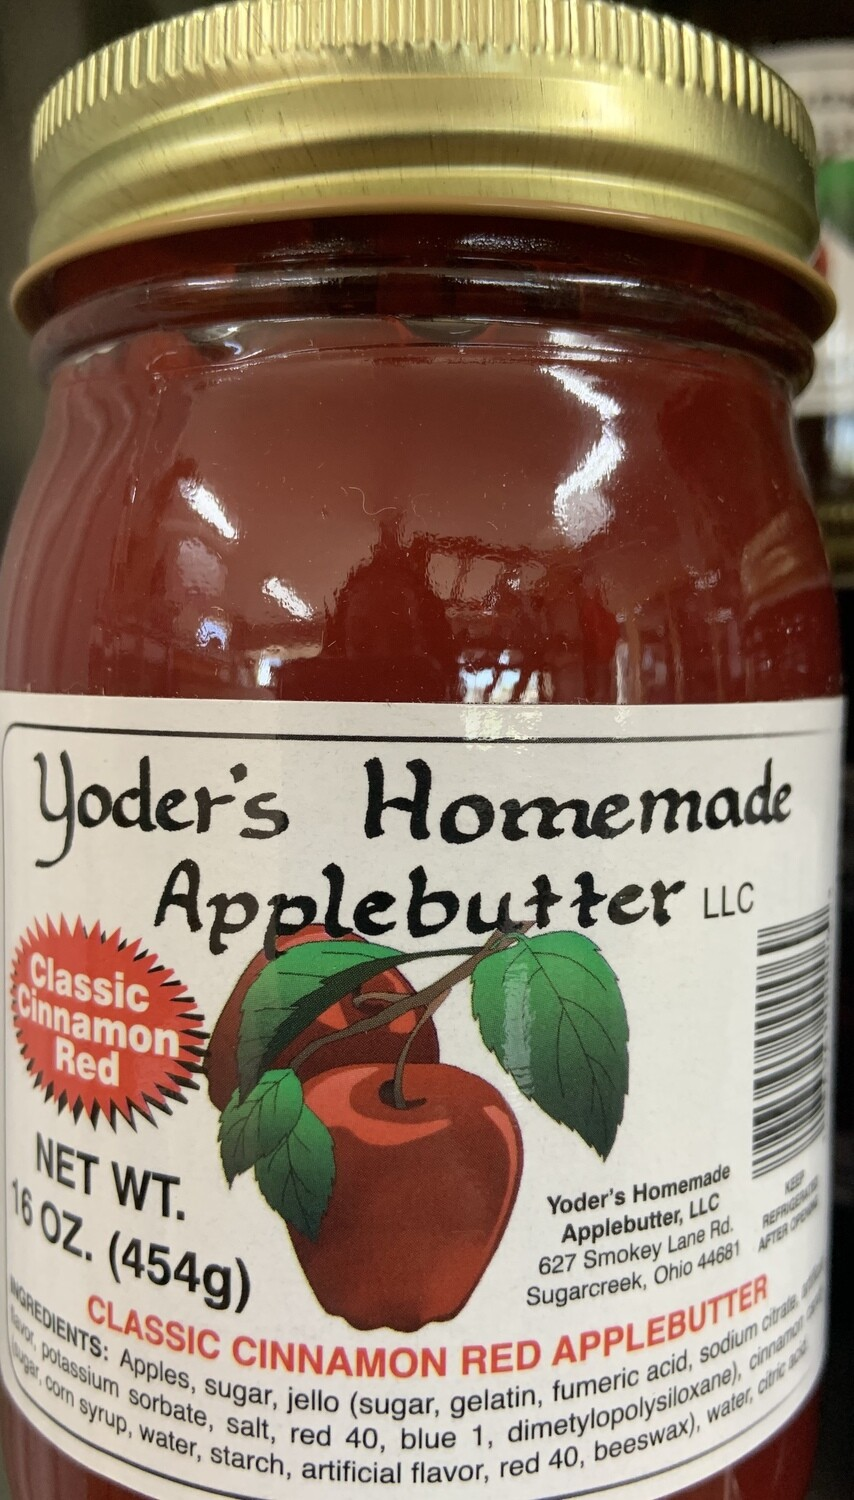 Yoder's Homemade Apple Butter Classic Cinnamon Red 16 oz